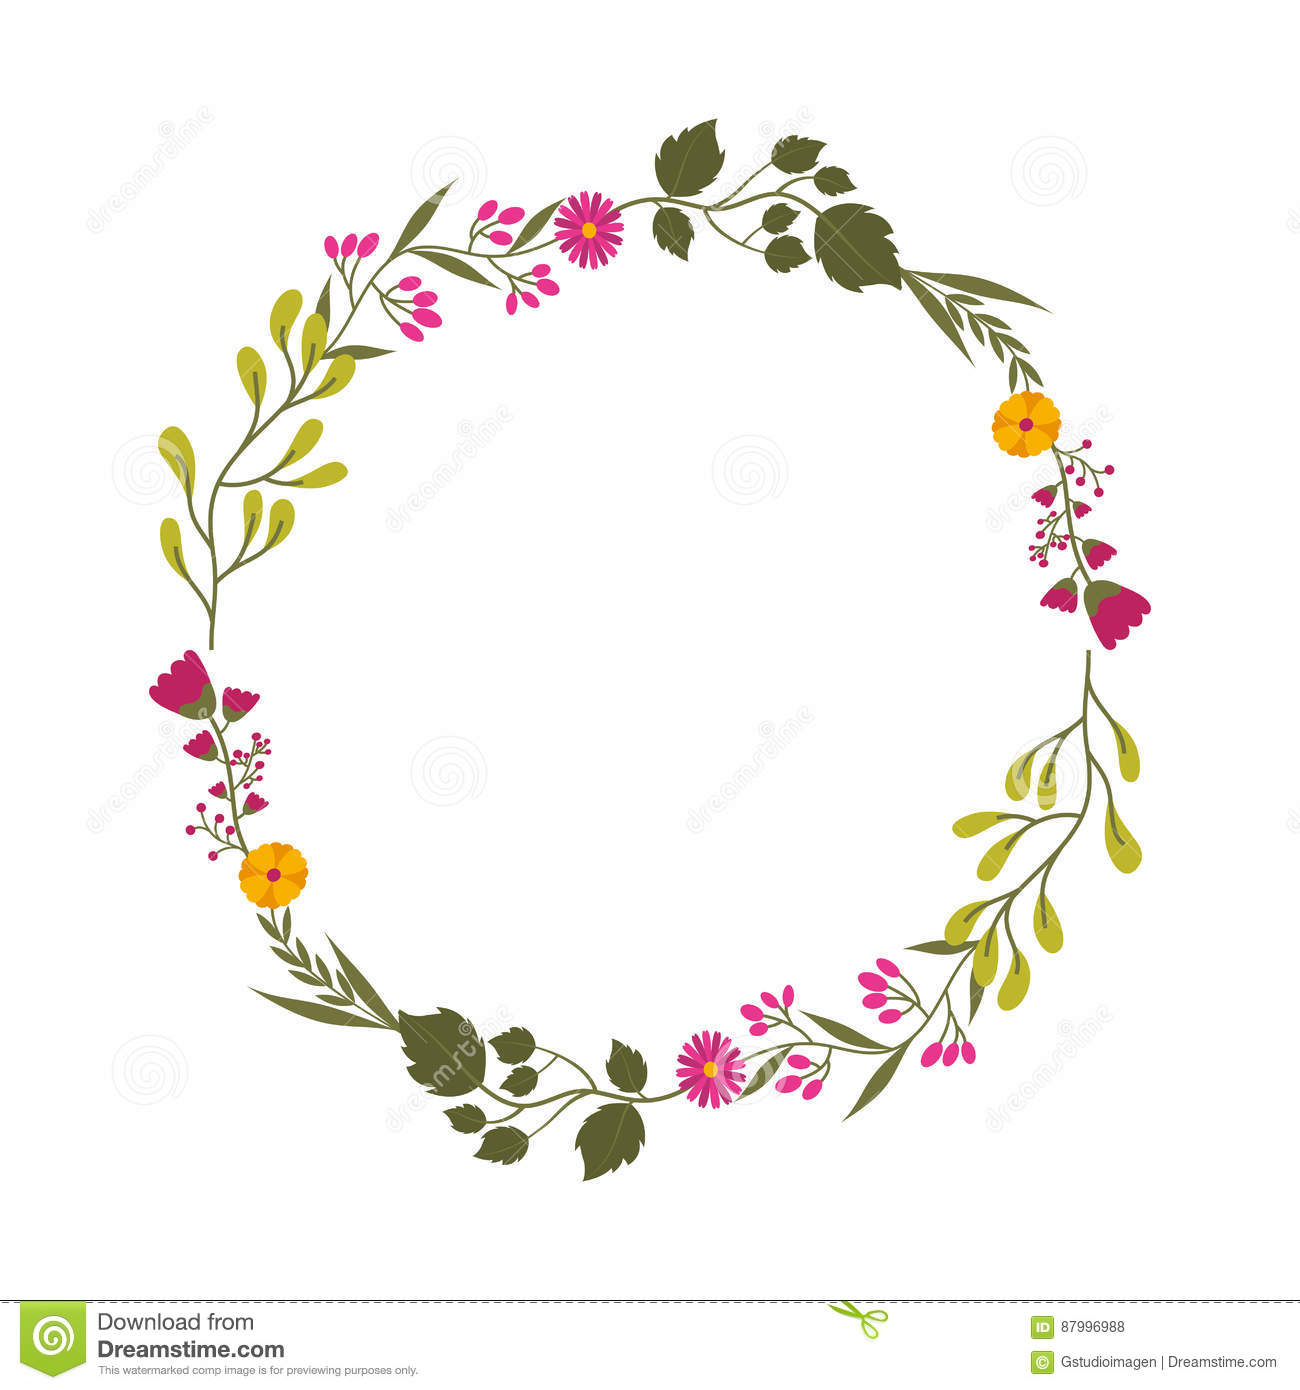 Decorative Floral Crown Icon Stock Vector Illustration Of Simple